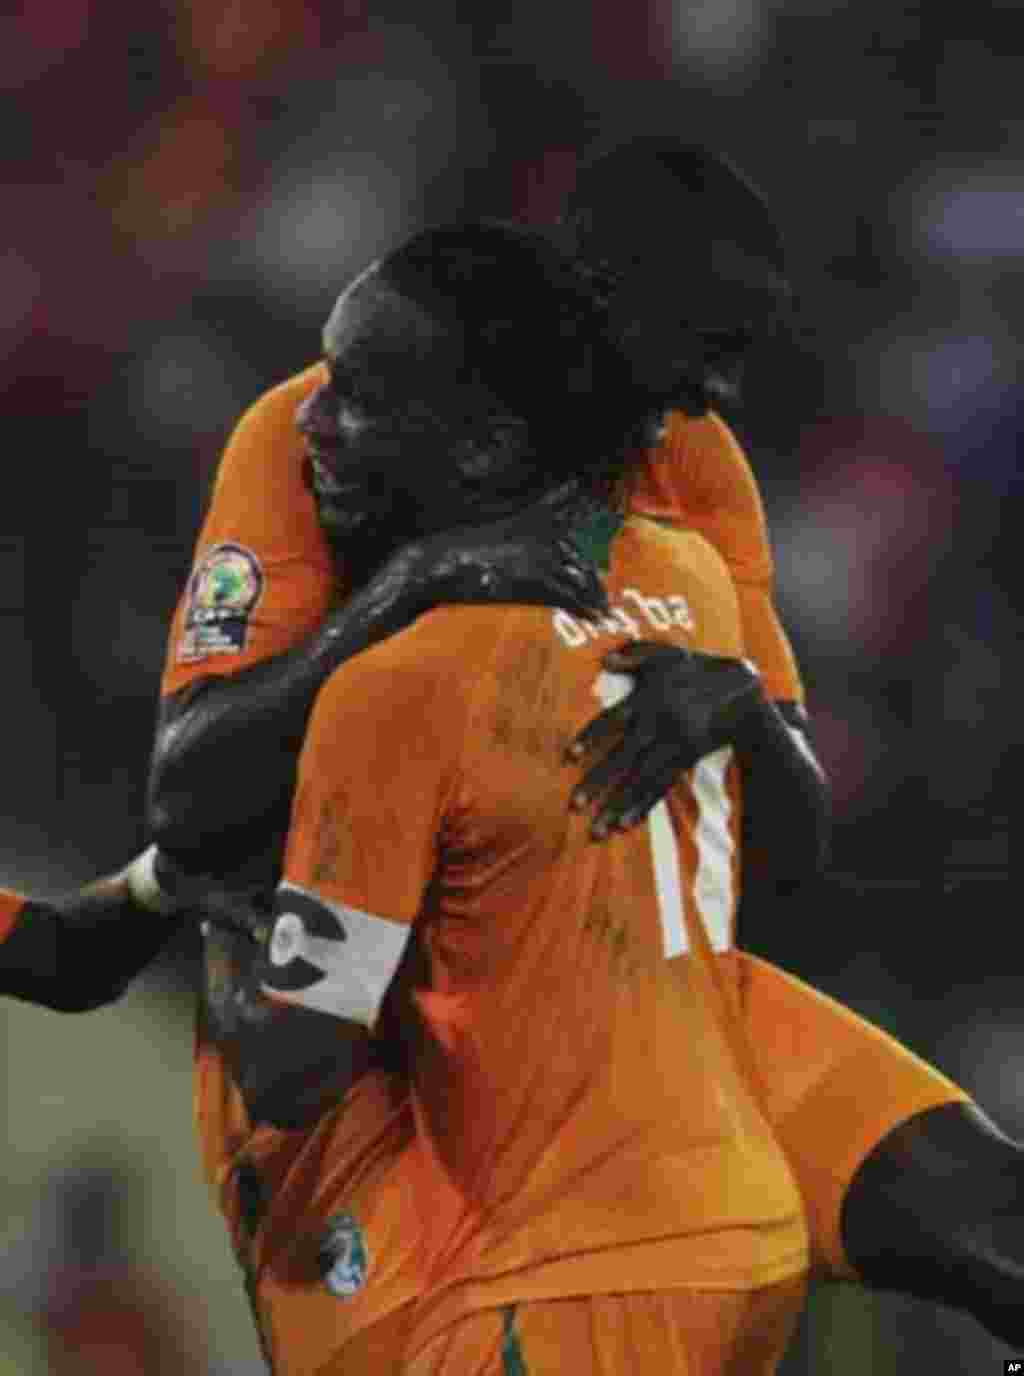 Yaya Toure (L) and Didier Drogba of Ivory Coast celebrate after scoring against Equatorial Guinea during their quarter-final match at the African Nations Cup soccer tournament in Malabo February 4, 2012.